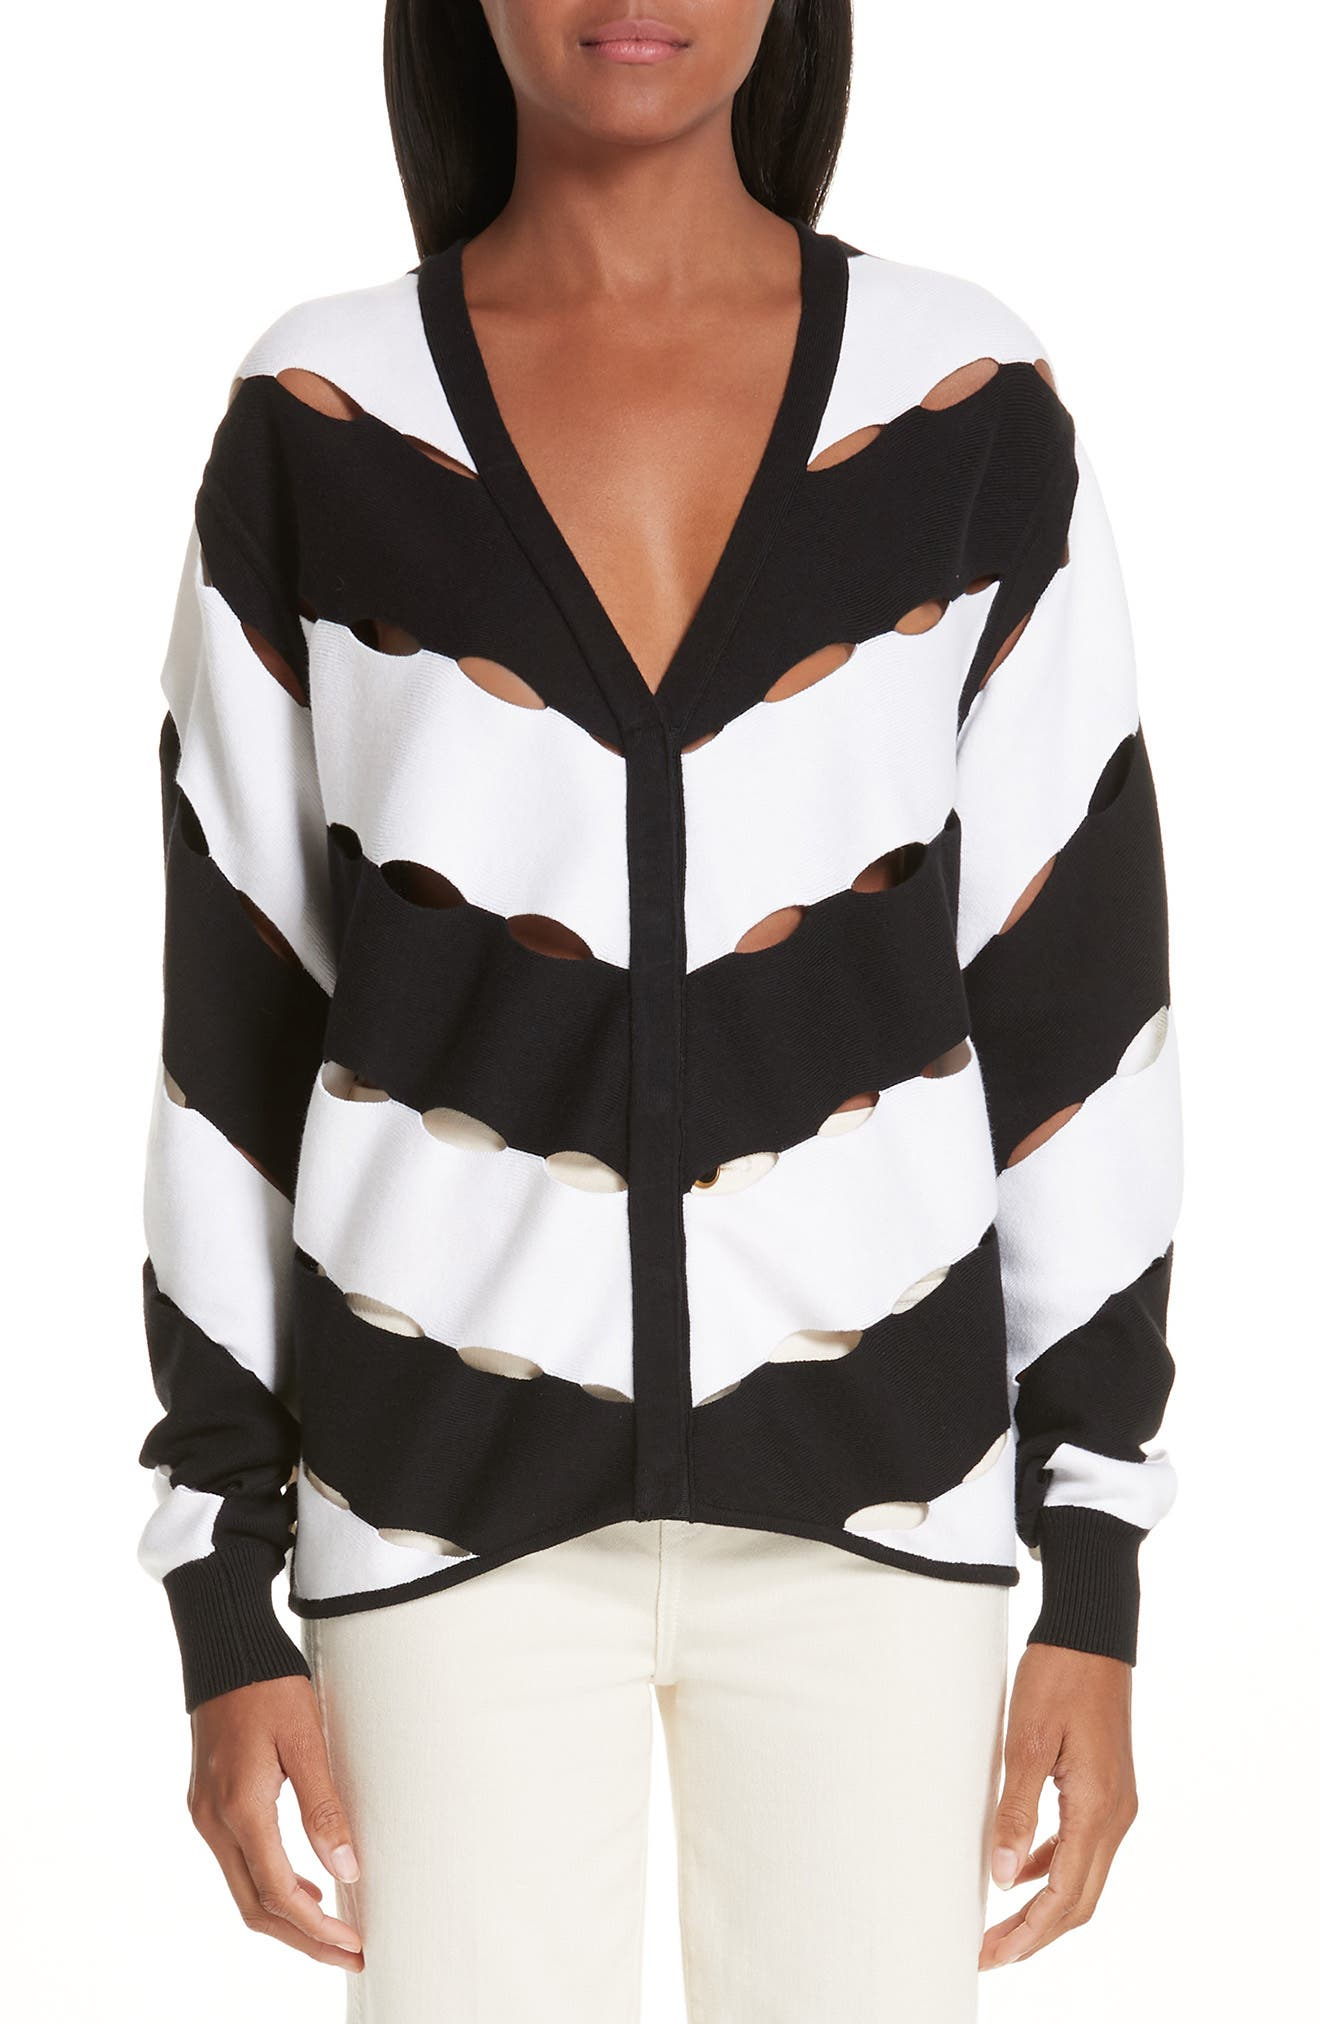 VICTOR GLEMAUD Diagonal Stripe Cardigan in Black And White Combo